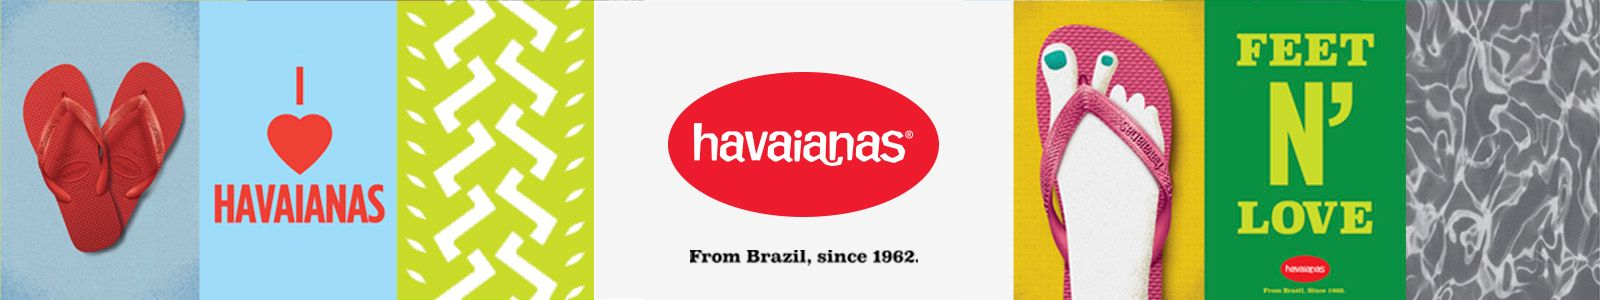 havaianas, From Brazil, since 1962, Feet n' Love